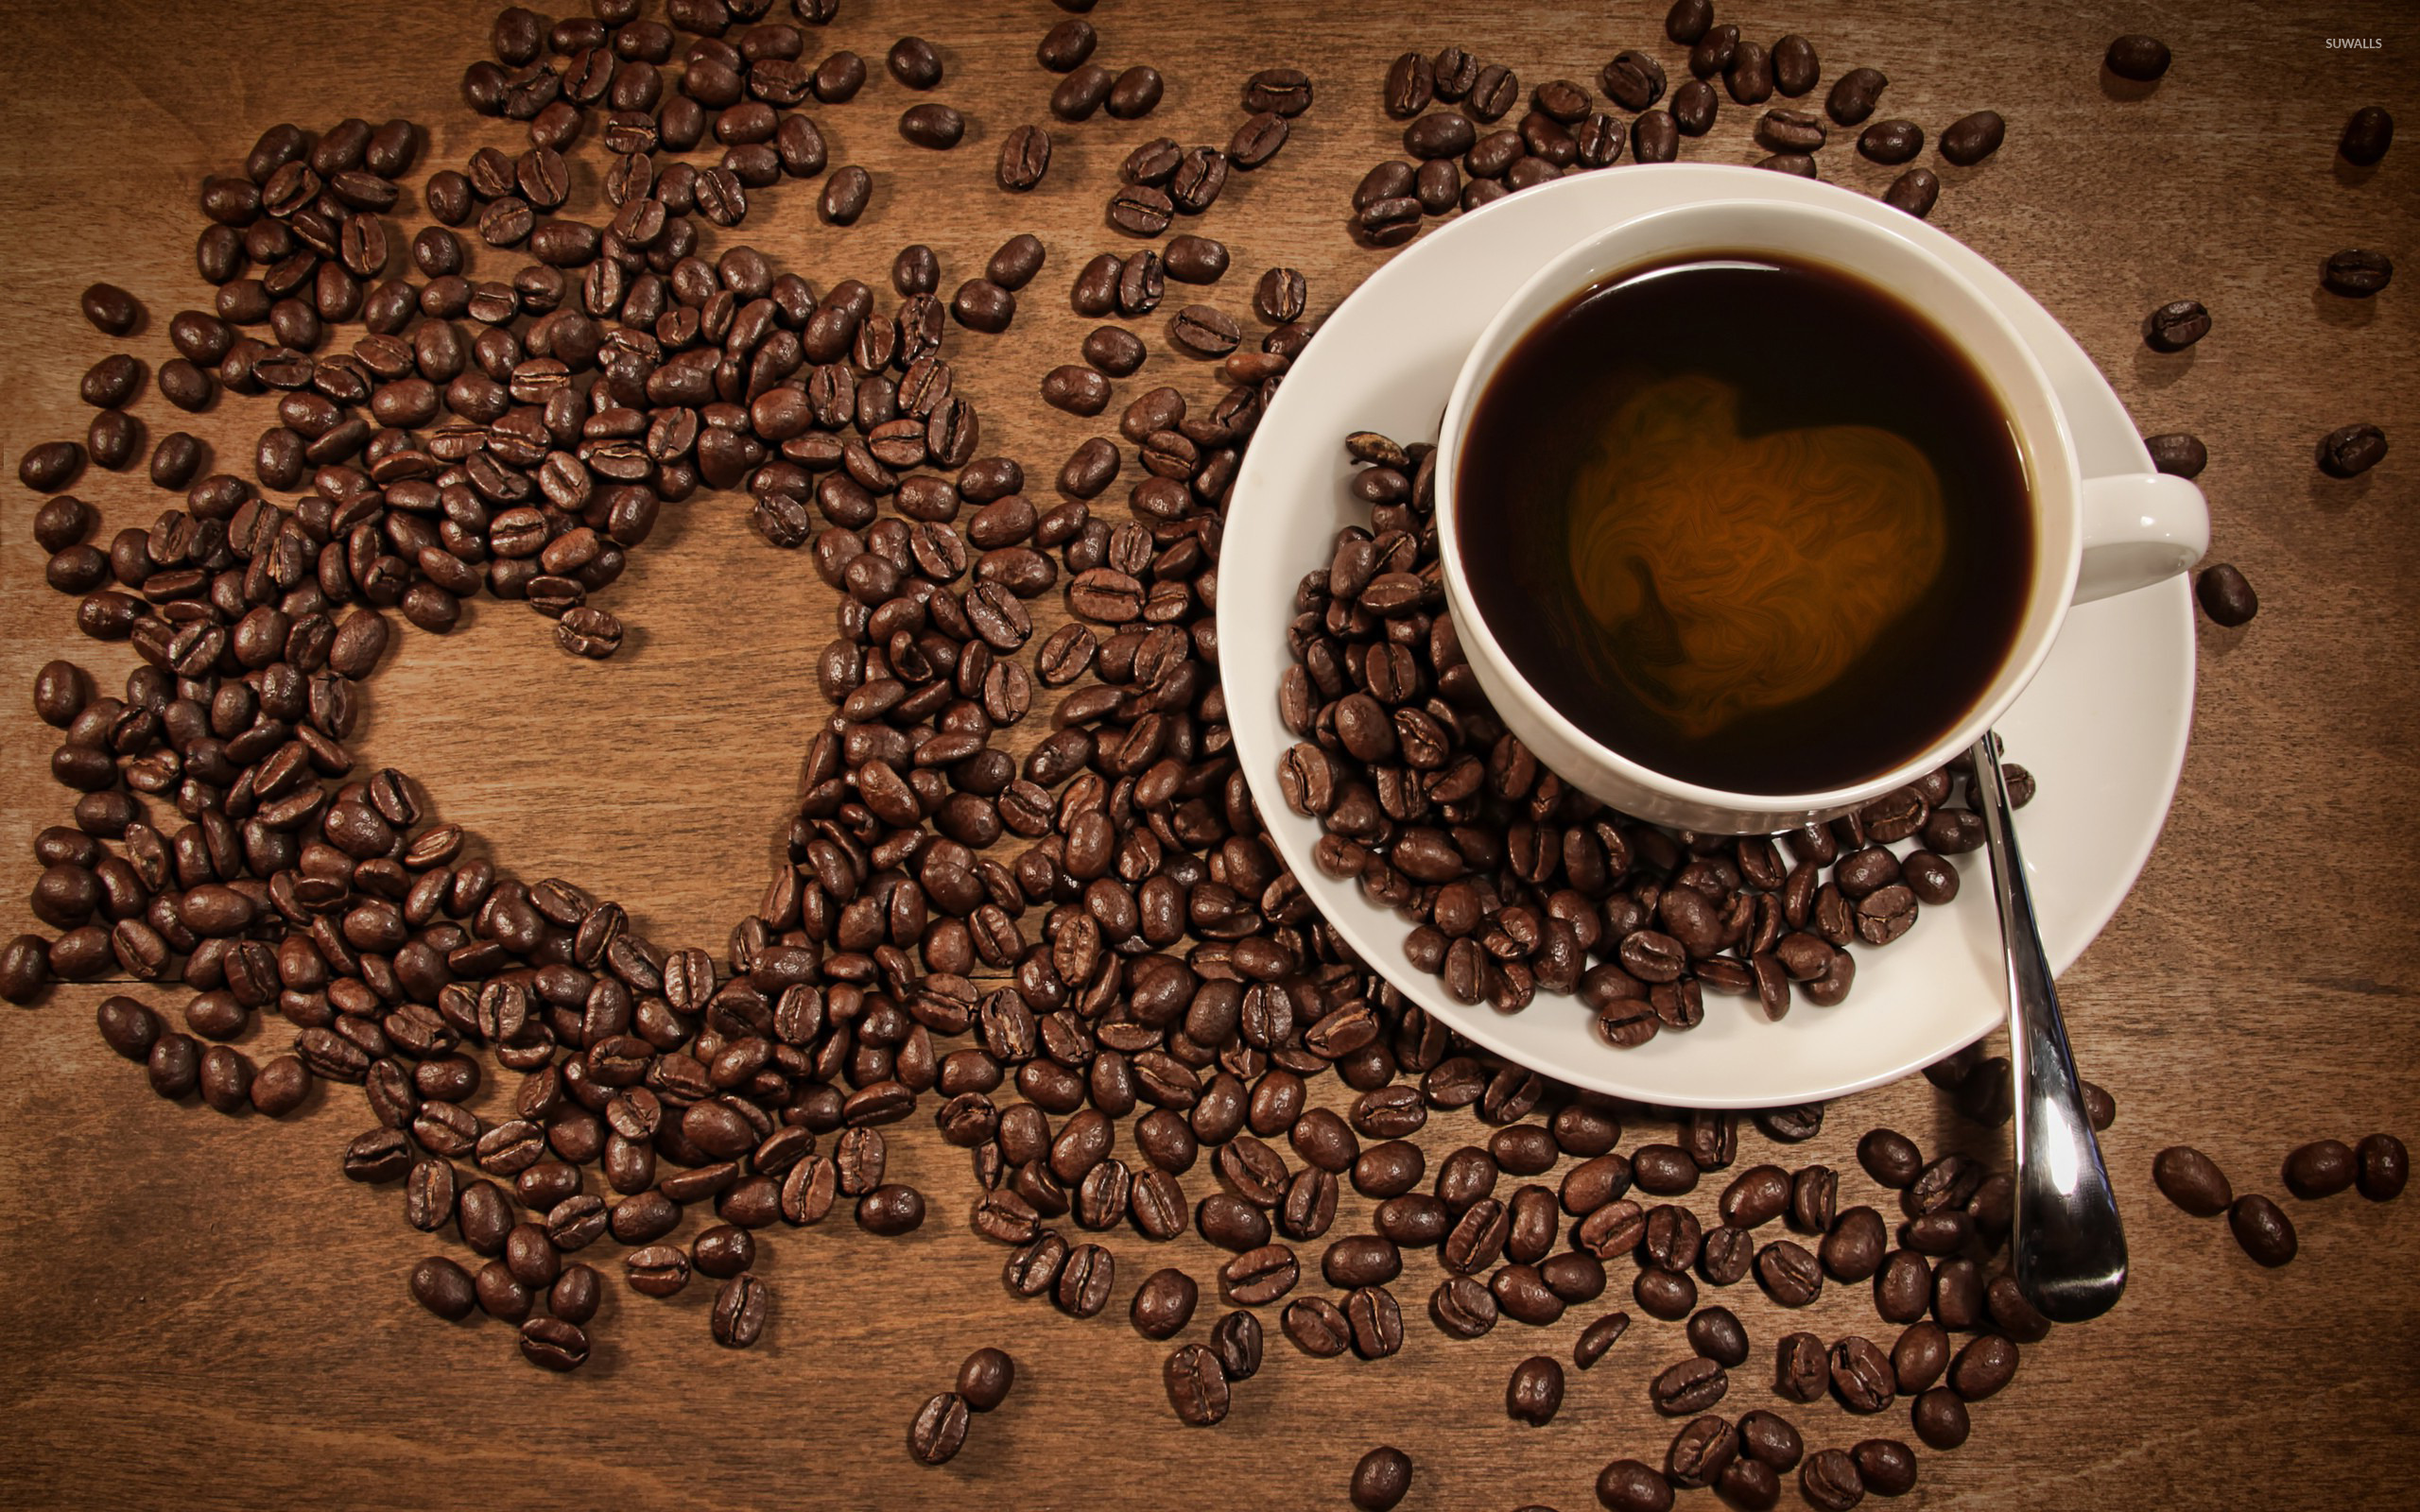 Coffee Lovers Love Hd Wallpapers: Photography Wallpapers